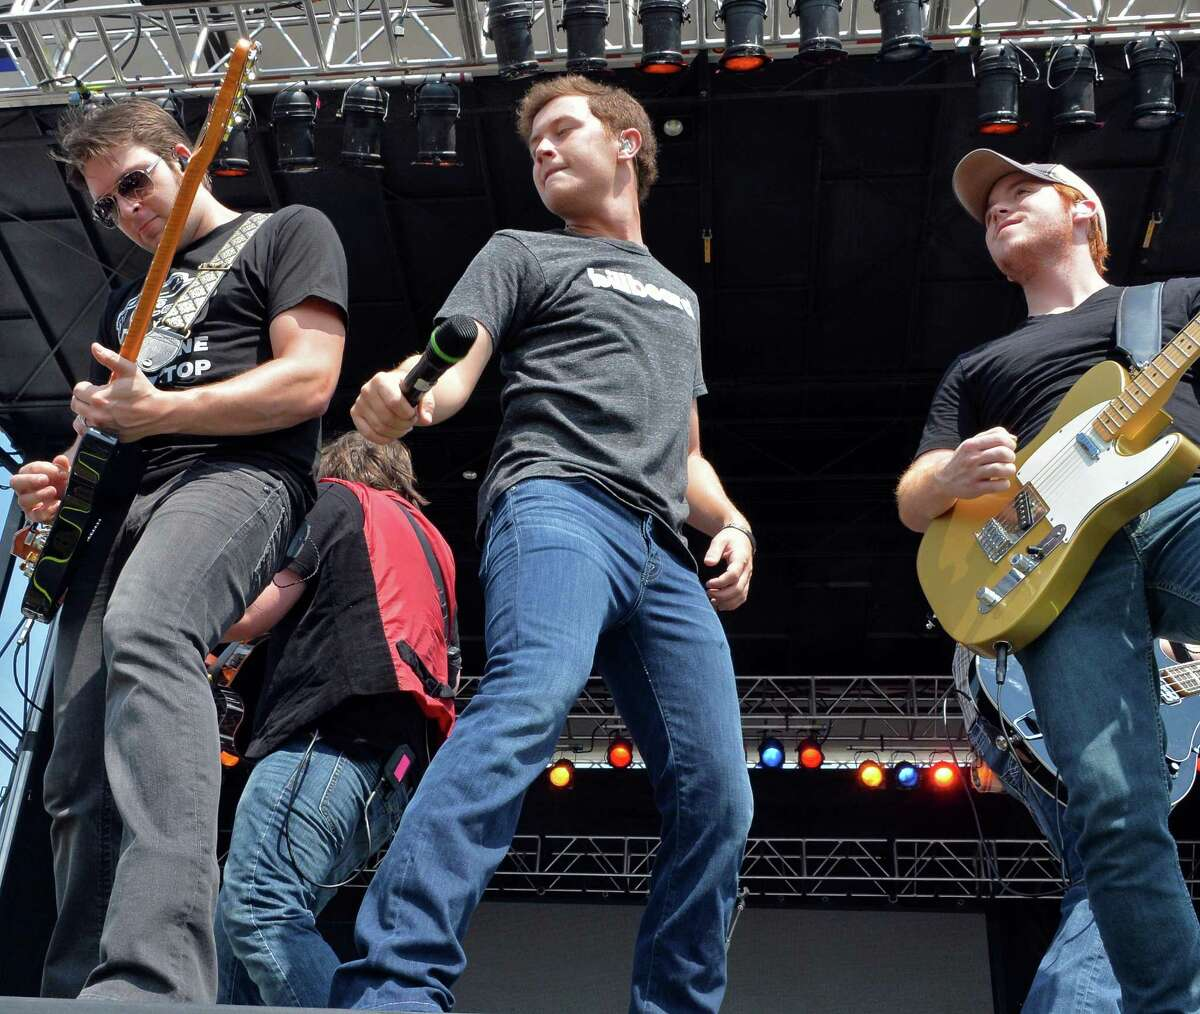 Scotty McCreery, center, performs with his band at the annual Countryfest show at the Schaghticoke Fairgrounds Saturday July 12, 2014, in Schagticoke, NY. (John Carl D'Annibale / Times Union)